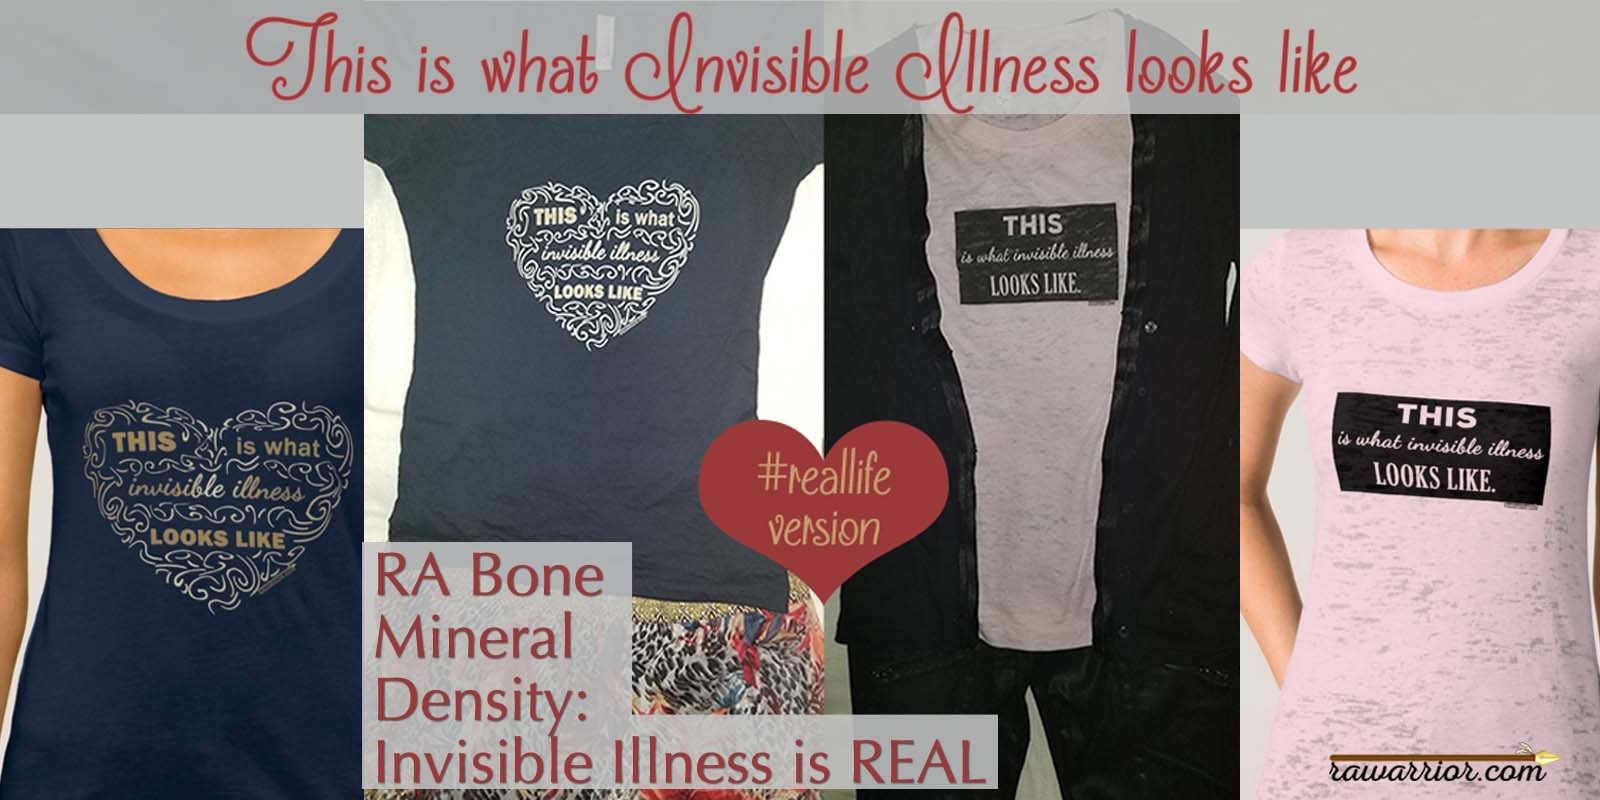 RA Bone Mineral Density is another indicator of invisible illness in RA / RD